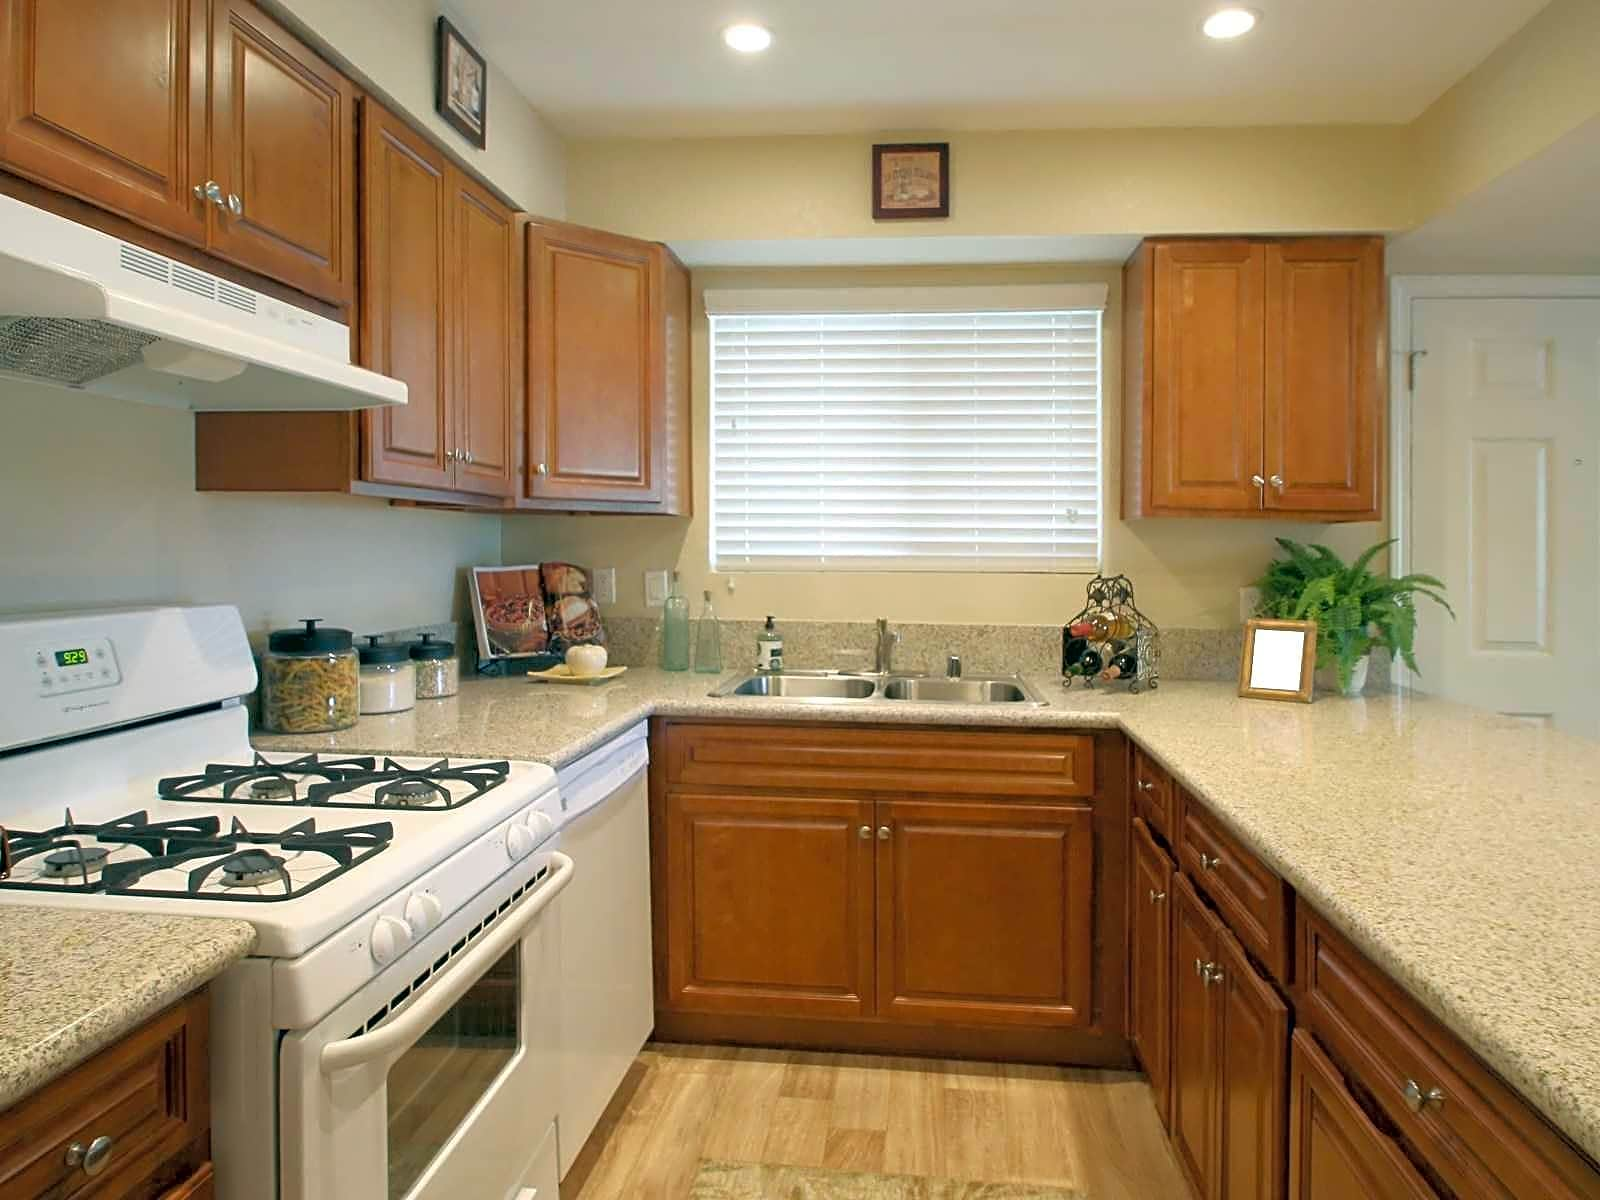 All of the apartments available have been completely remodeled and include granite countertops!